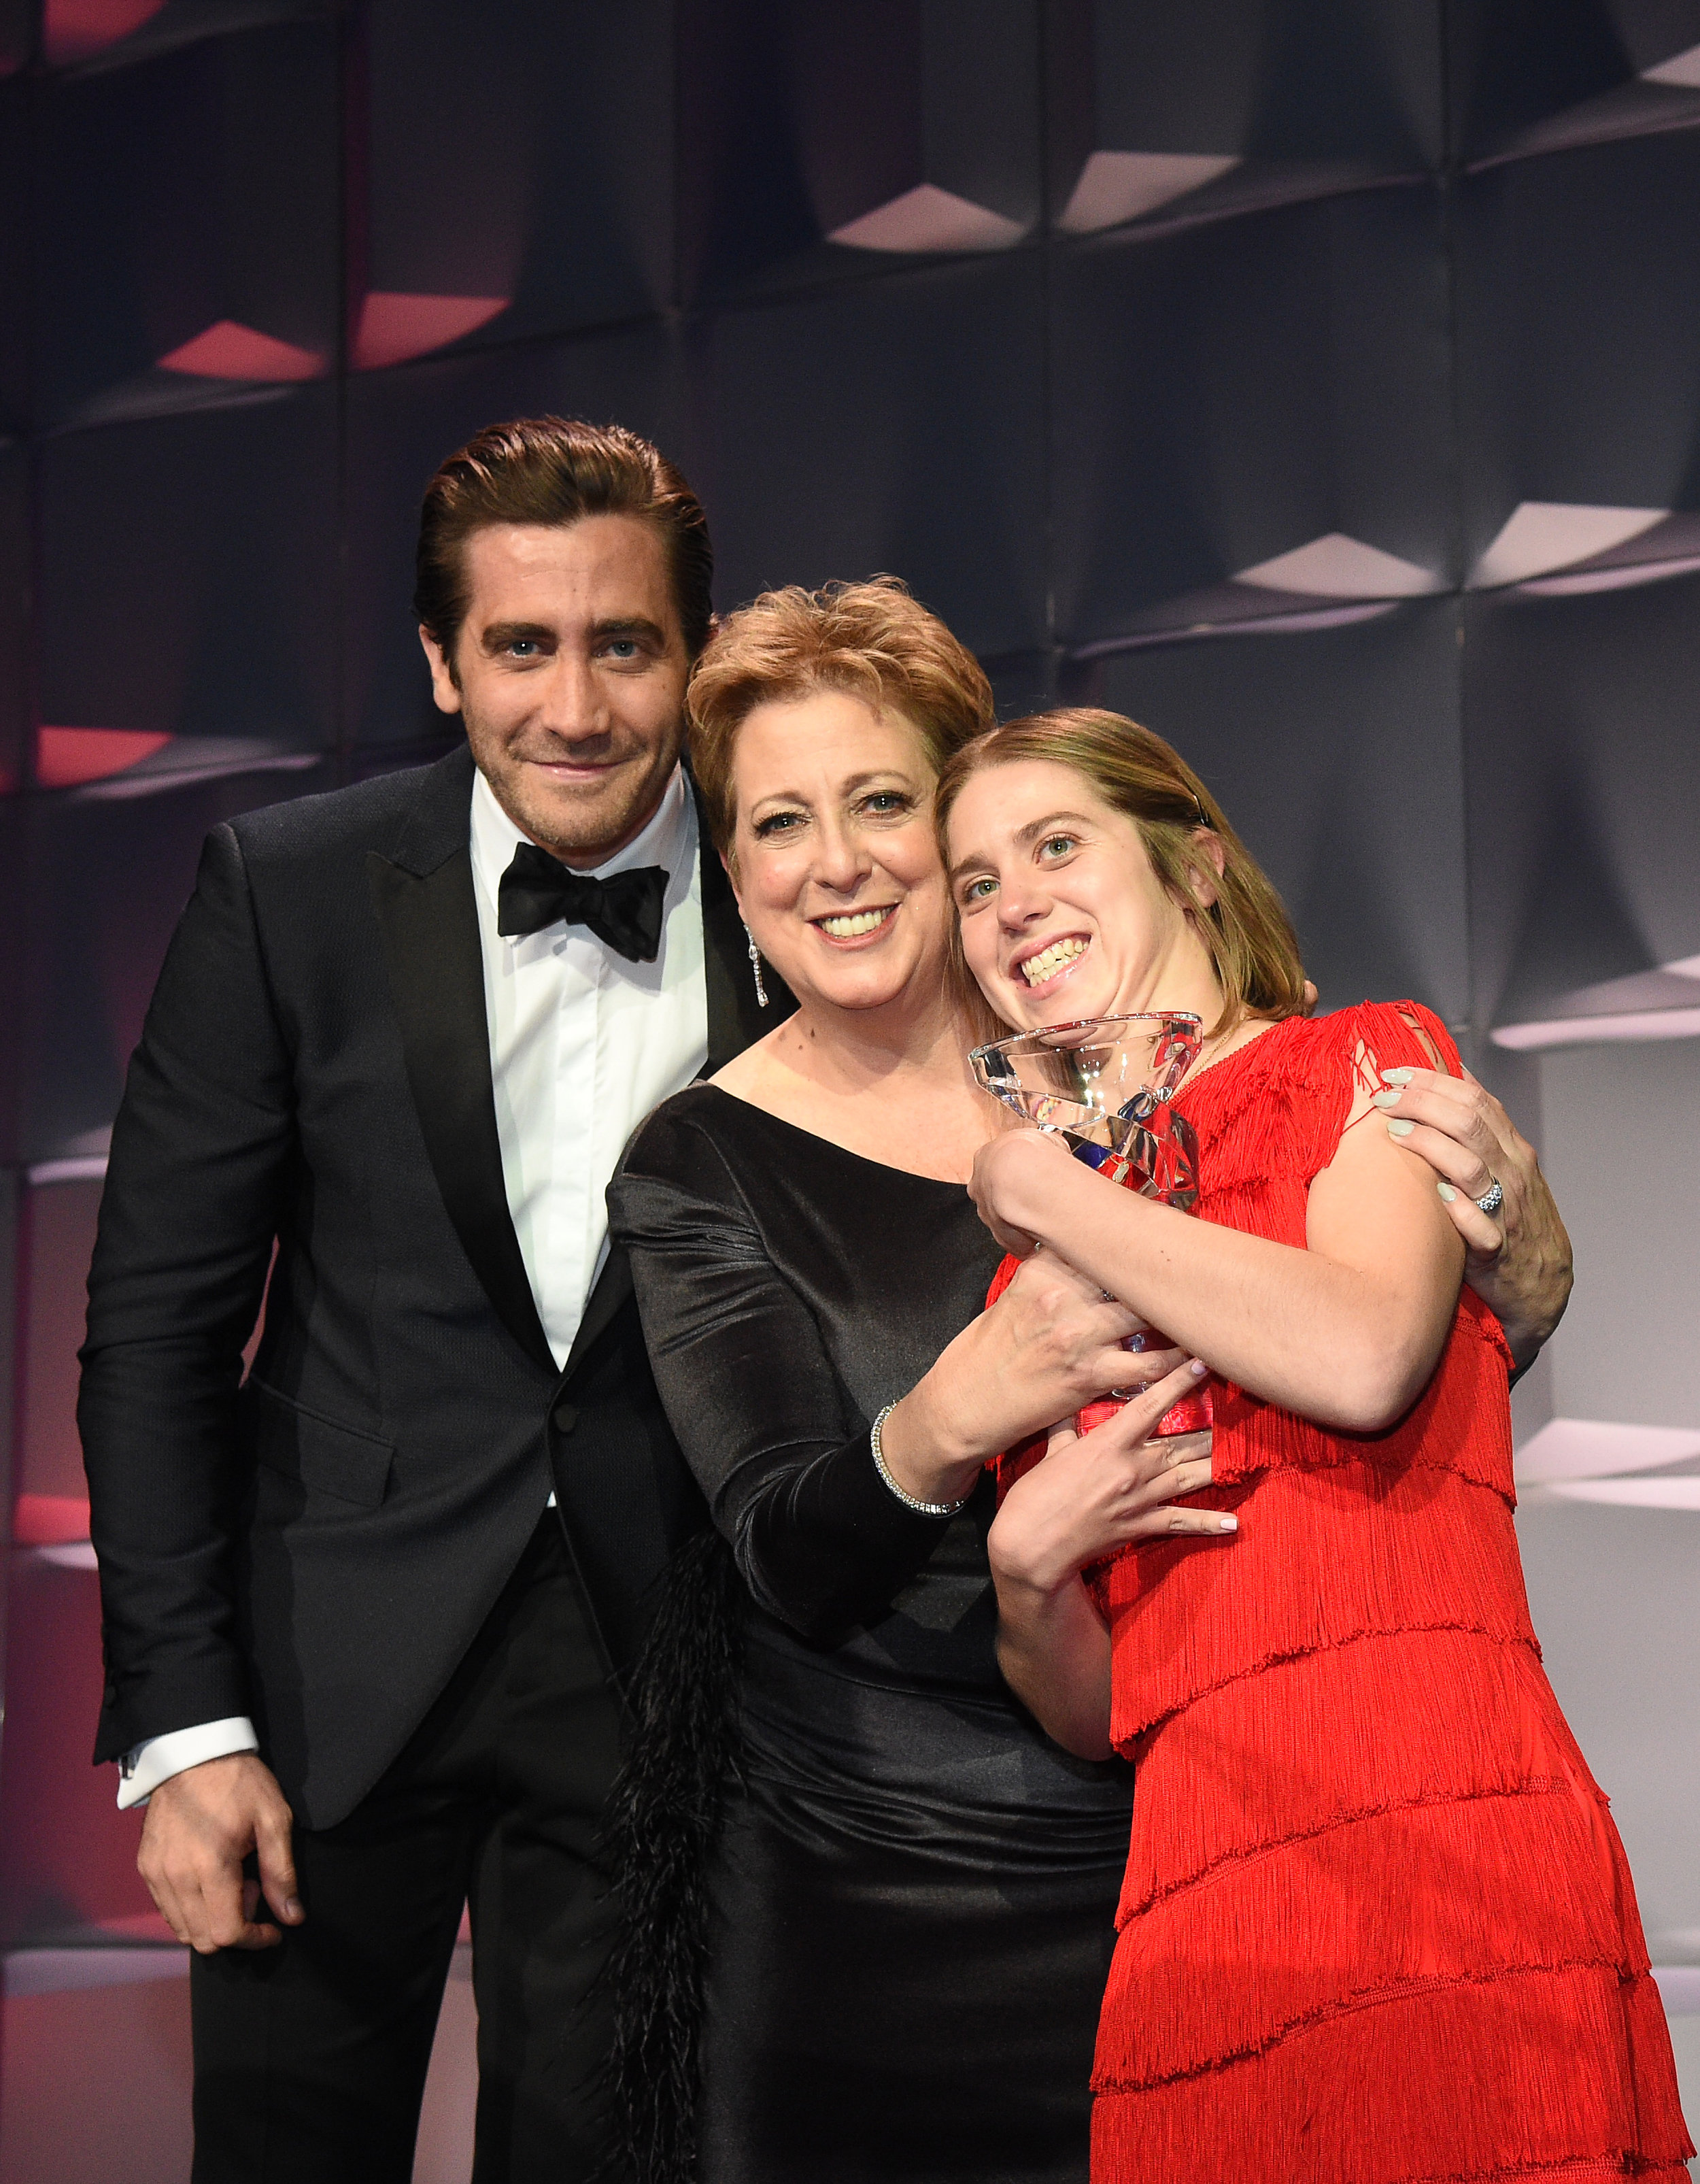 (L-R) Jake Gyllenhaal, CEO & President UNICEF USA Caryl M. Stern, and honoree Lucy Meyer attend 13th Annual UNICEF Snowflake Ball 2017 at Cipriani Wall Street on November 28, 2017 in New York City. (Photo by Bryan Bedder/Getty Images for UNICEF)